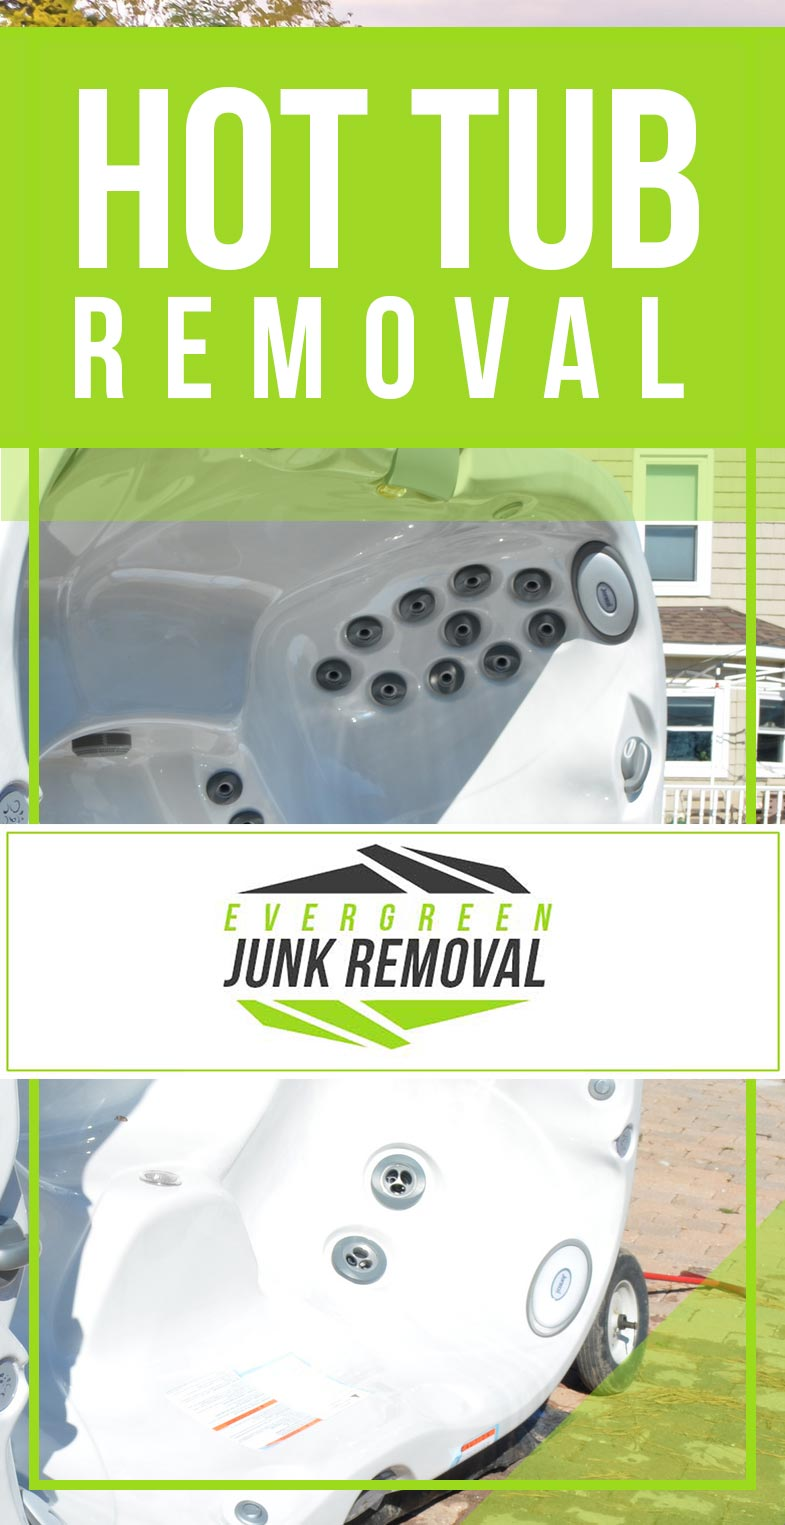 Tampa Hot Tub Removal